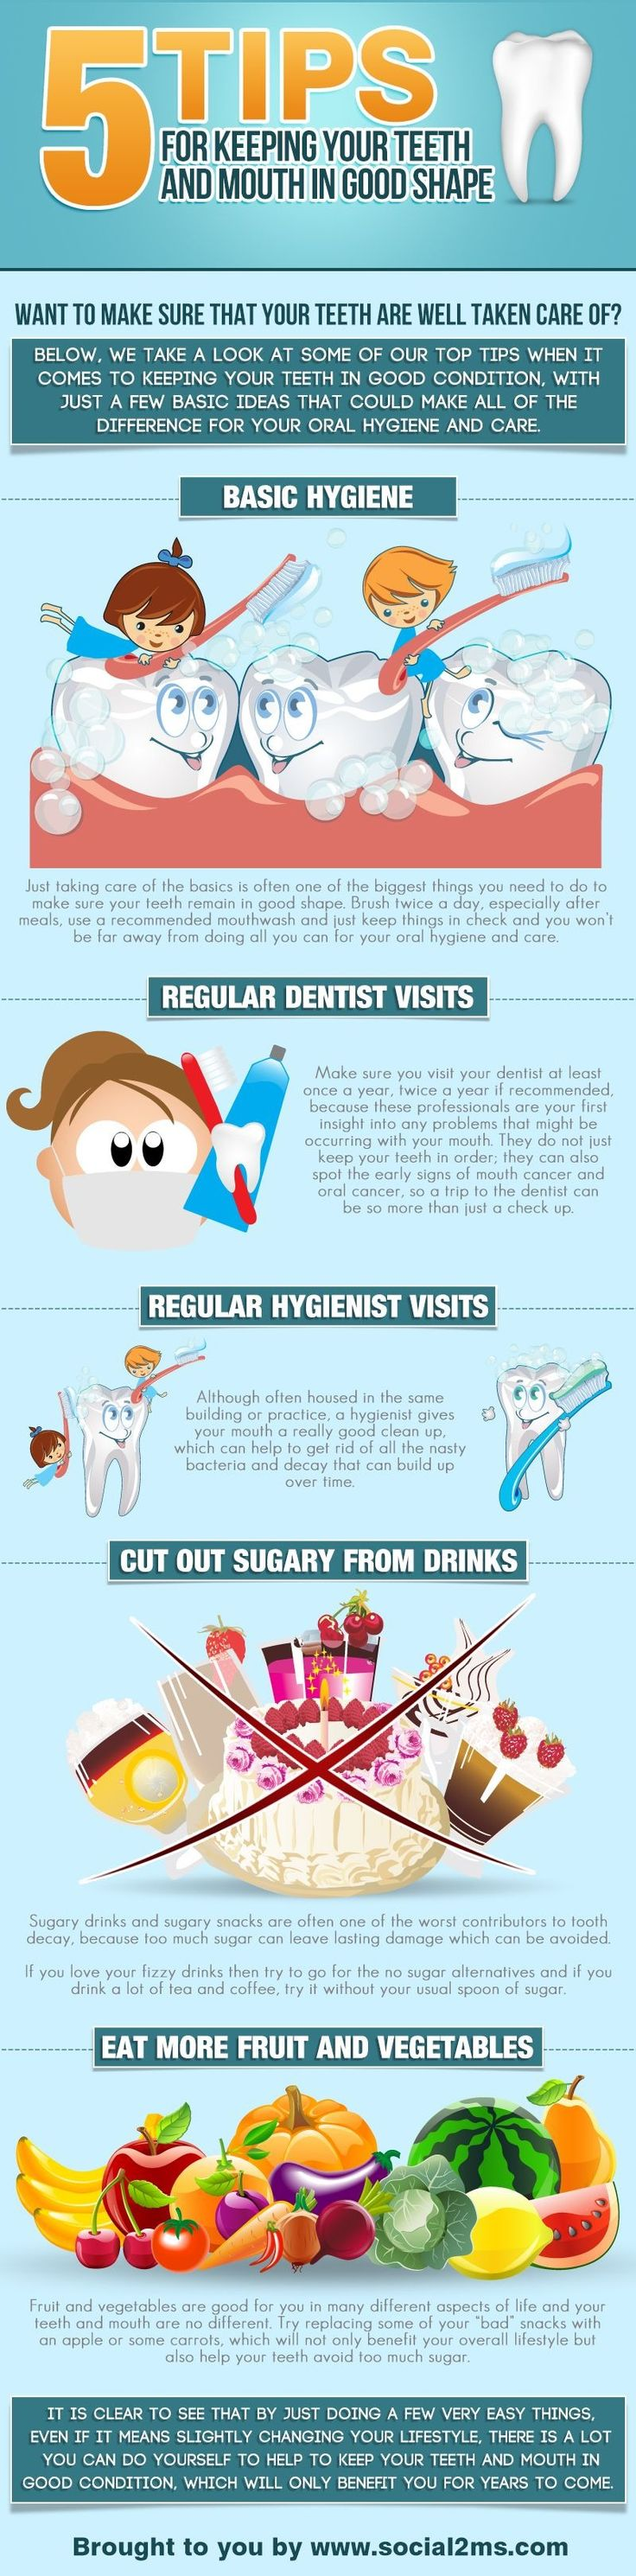 5 tips for keeping your teeth and mouth in good shape. [infographic] Children's Dentistry of Trappe, pediatric dentist in Trappe/Collegeville, PA @ www.childrendentistryoftrappe.com